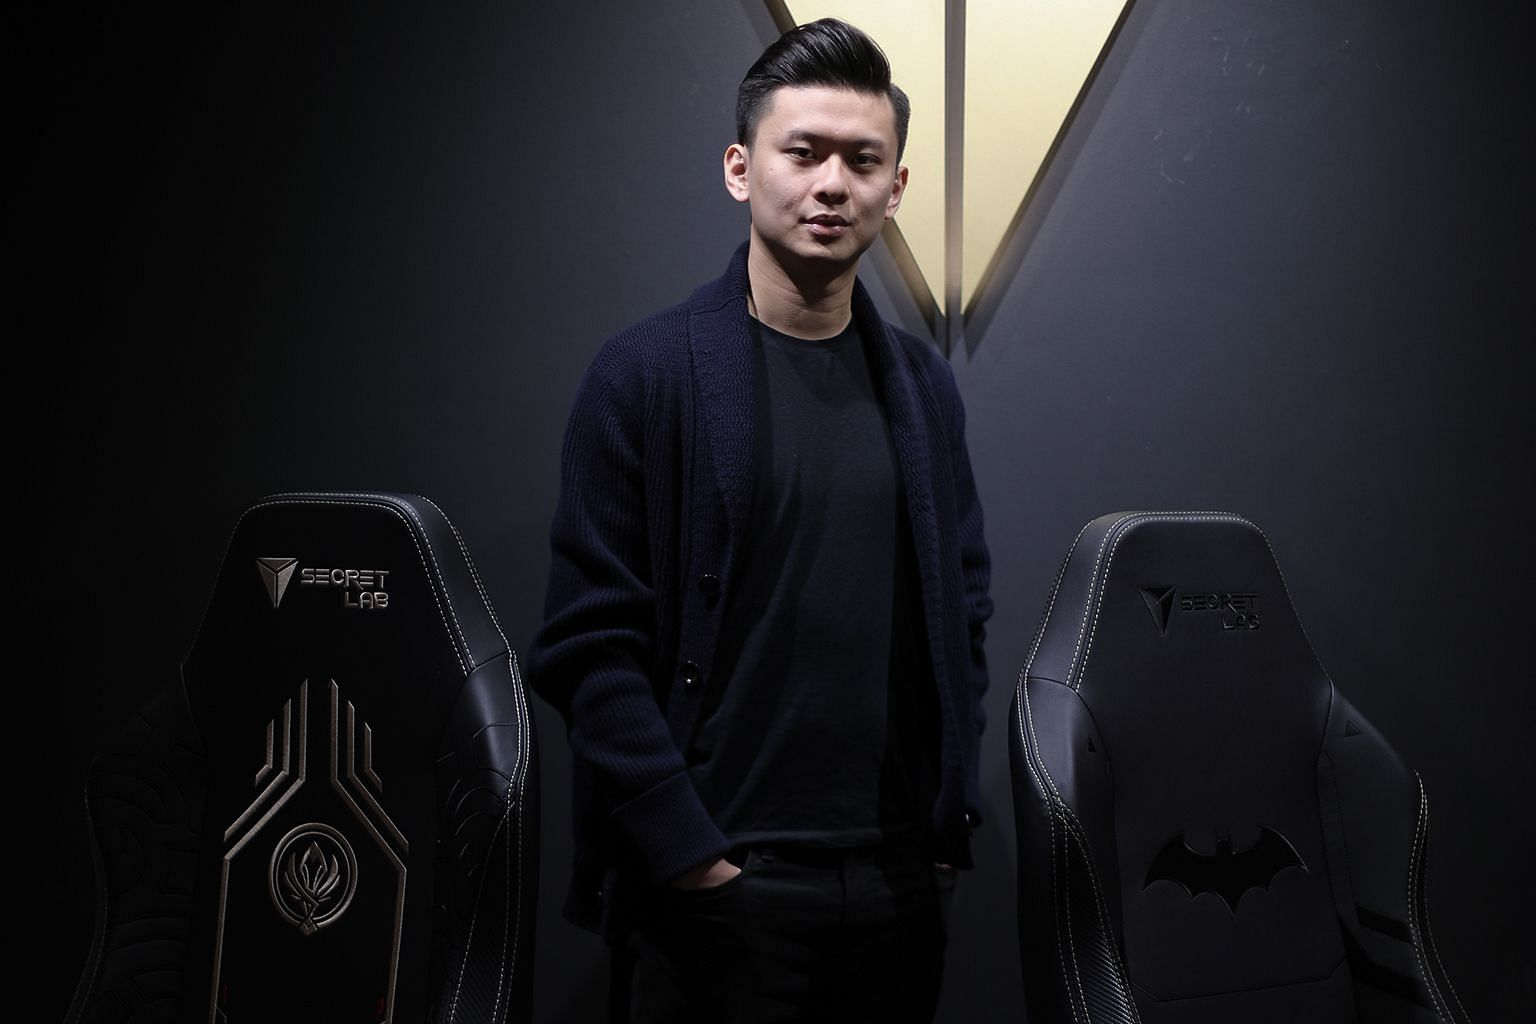 Secretlab co-founder Ian Alexander Ang is excited about Singapore being at the epicentre of the rapidly expanding e-sports industry, with governments and investors worldwide taking note of its potential, and analysts predicting phenomenal growth for the s